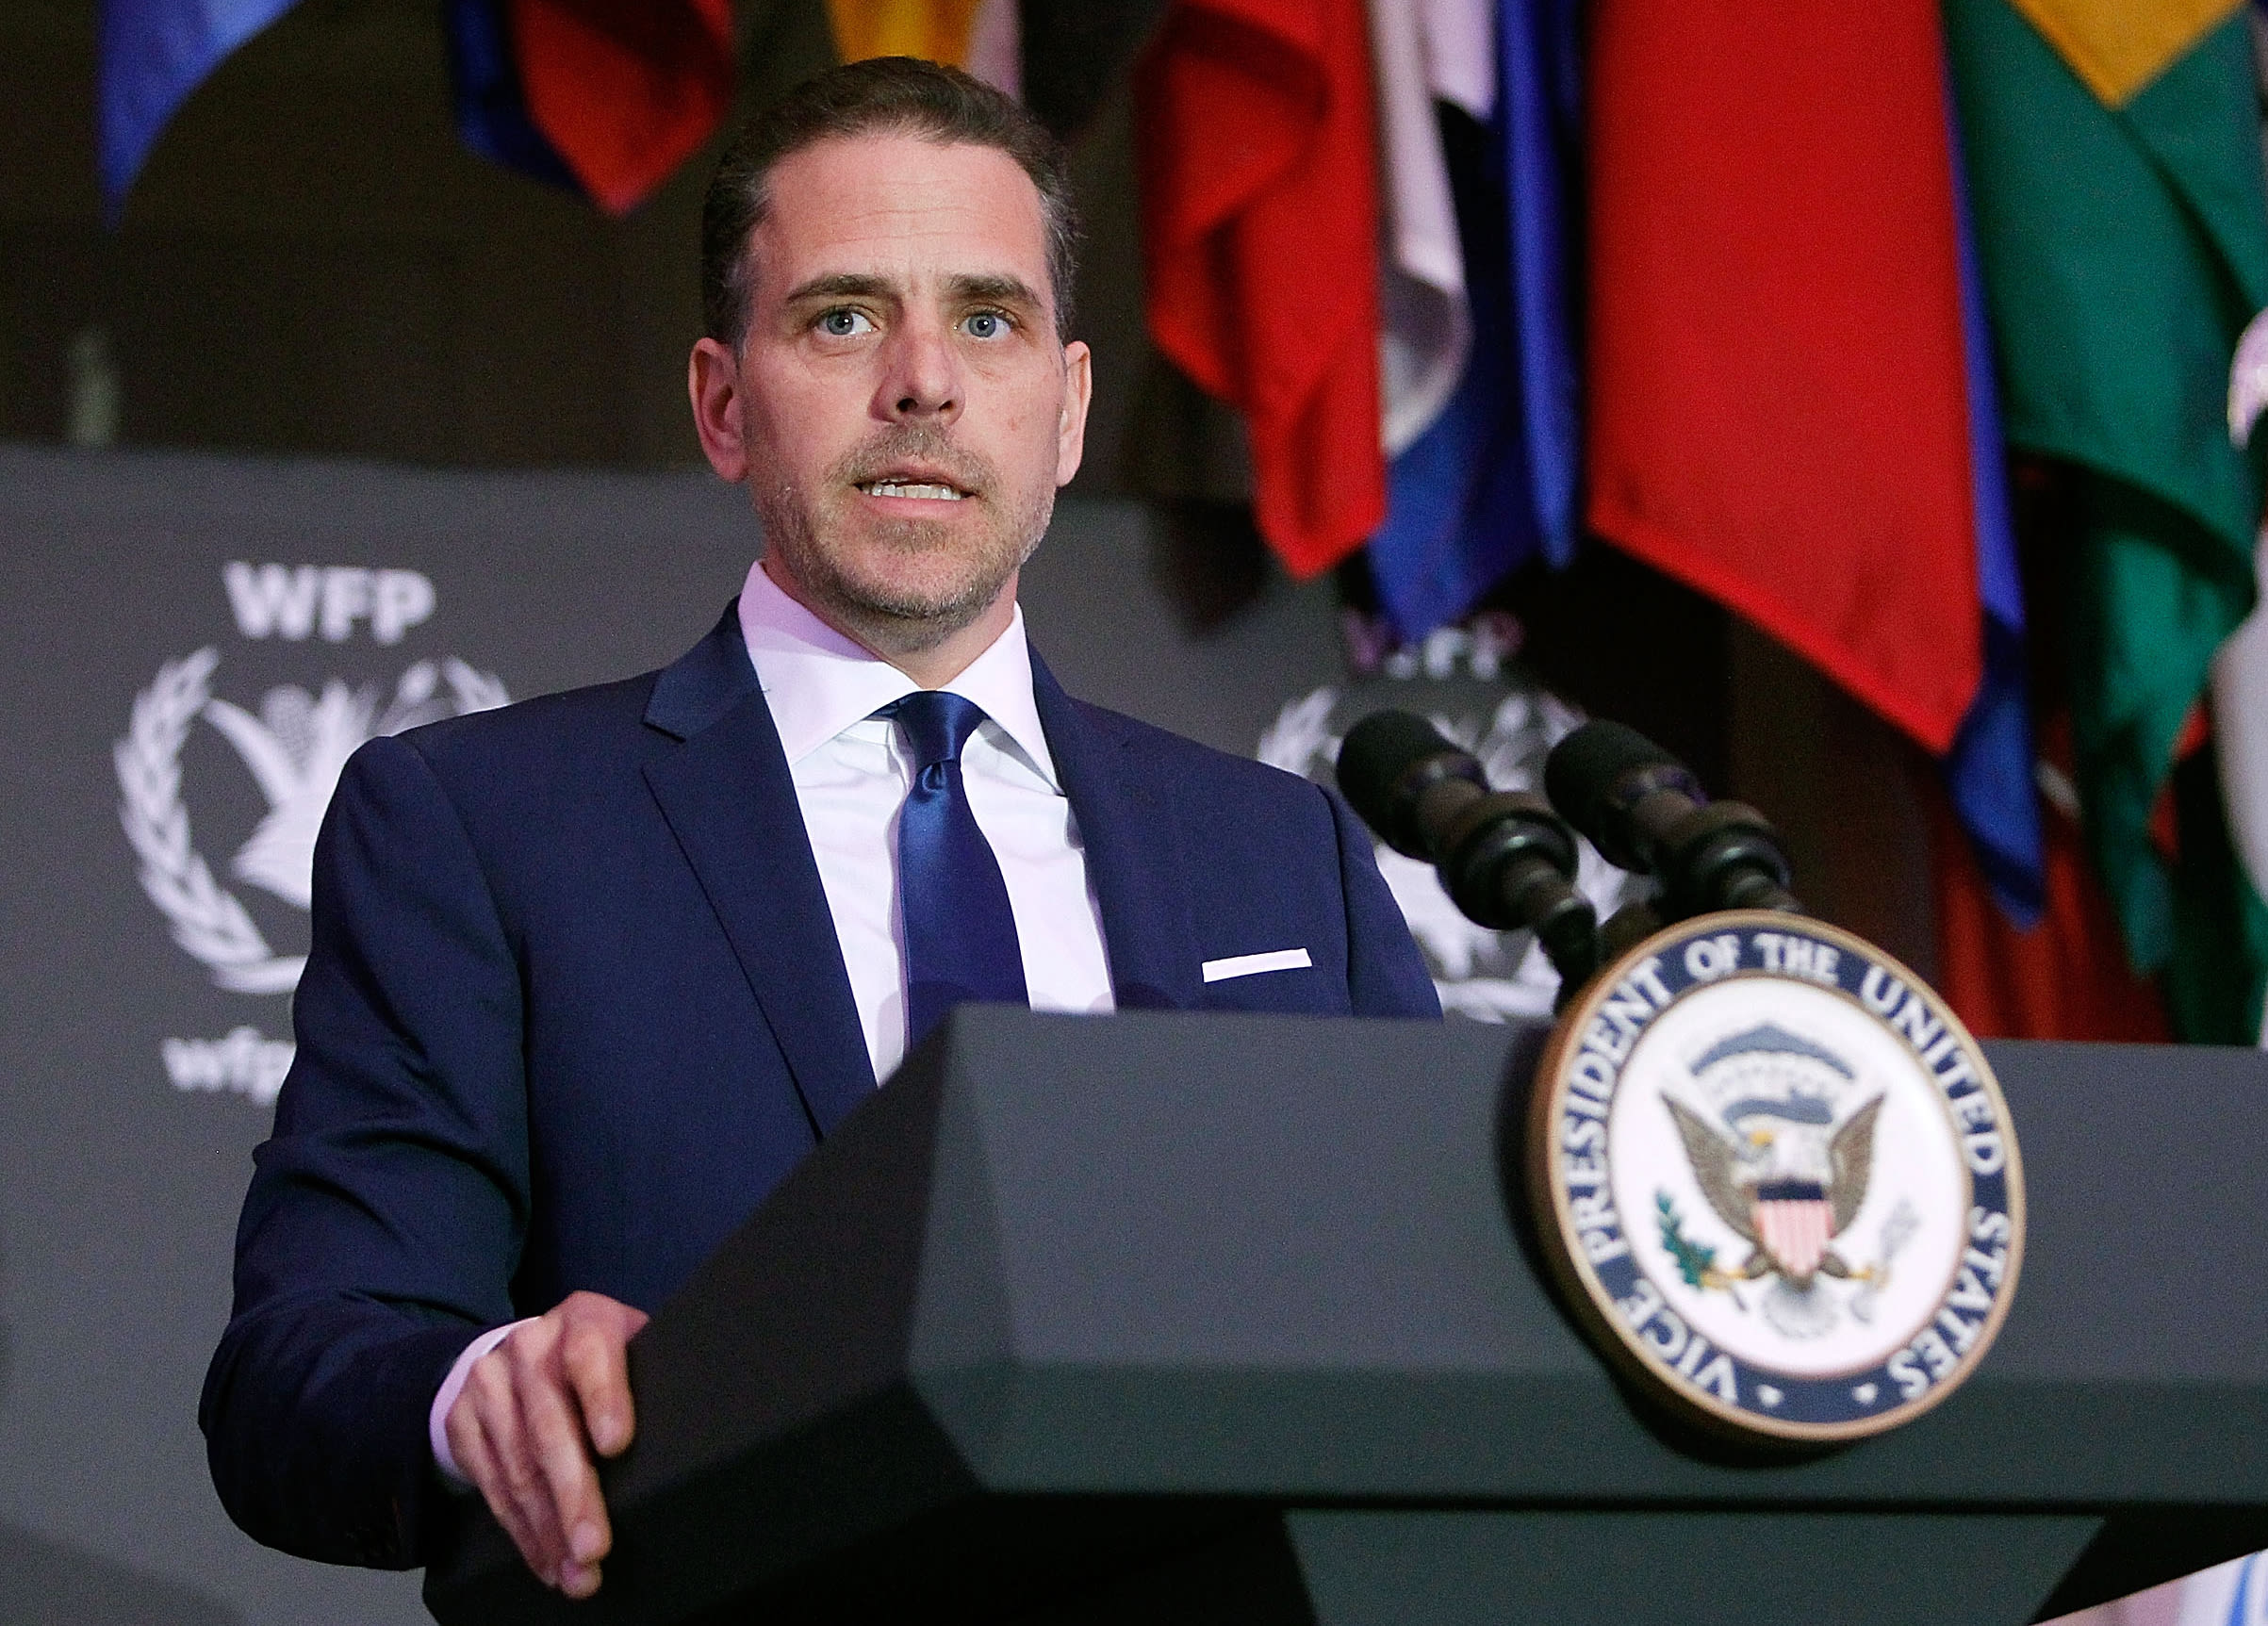 Well That's It. The Republicans Have Convinced Me. I am NOT Voting for Hunter Biden!